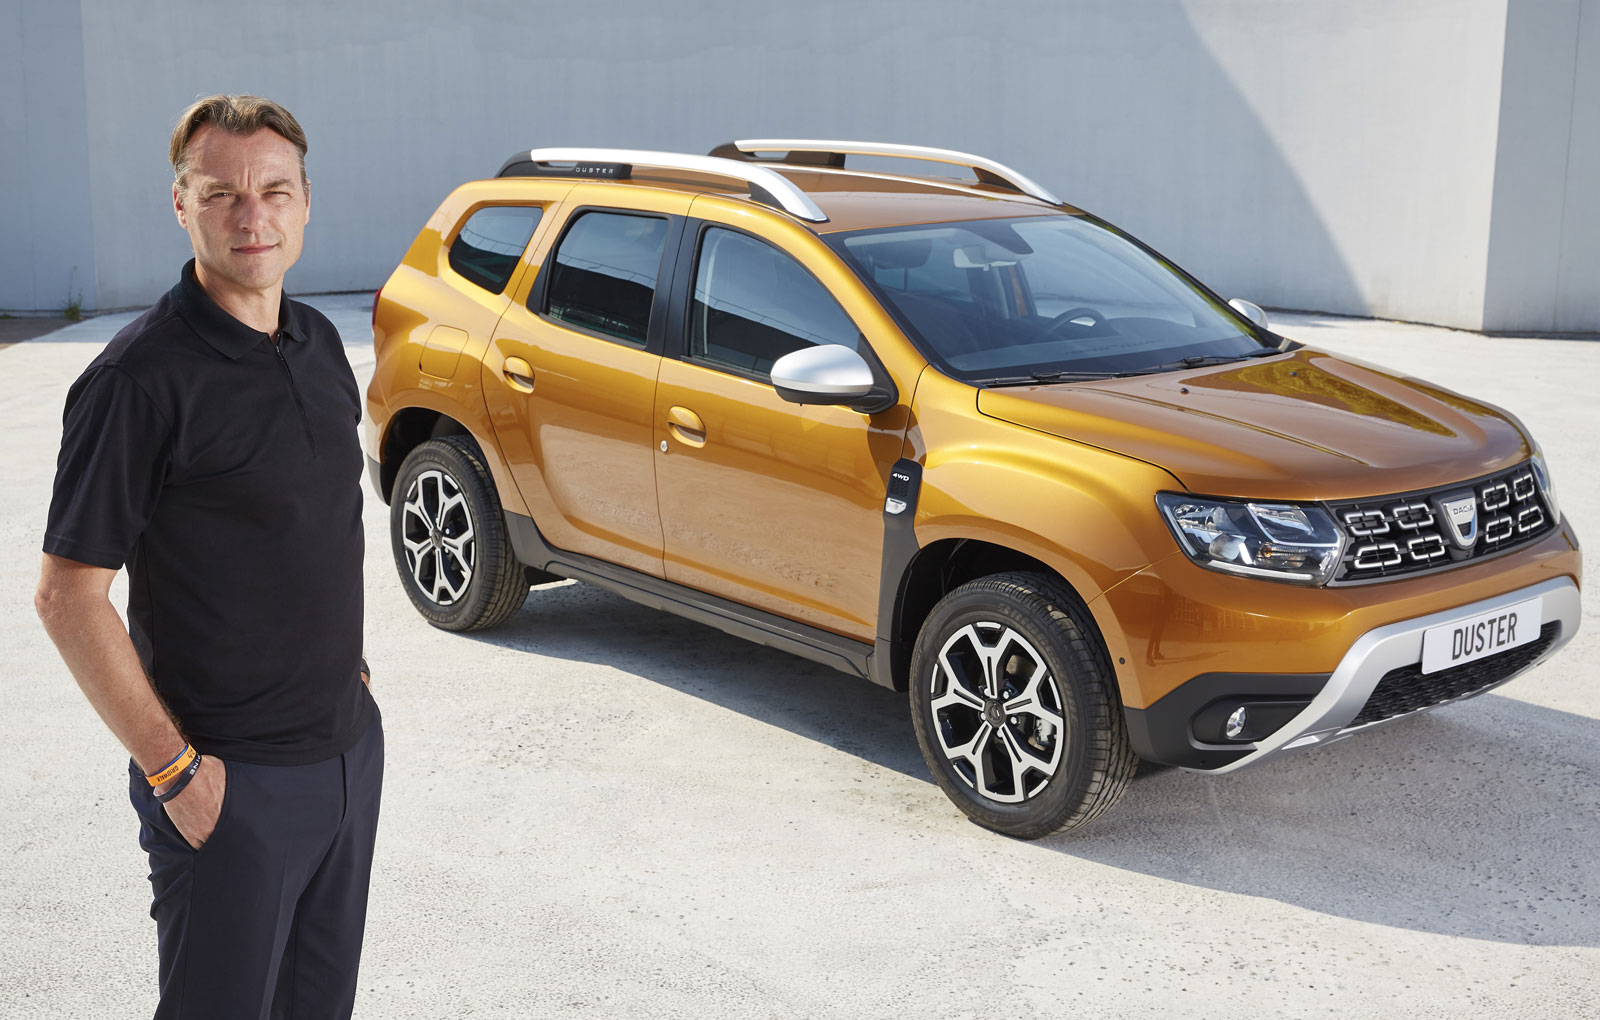 Duster second generation